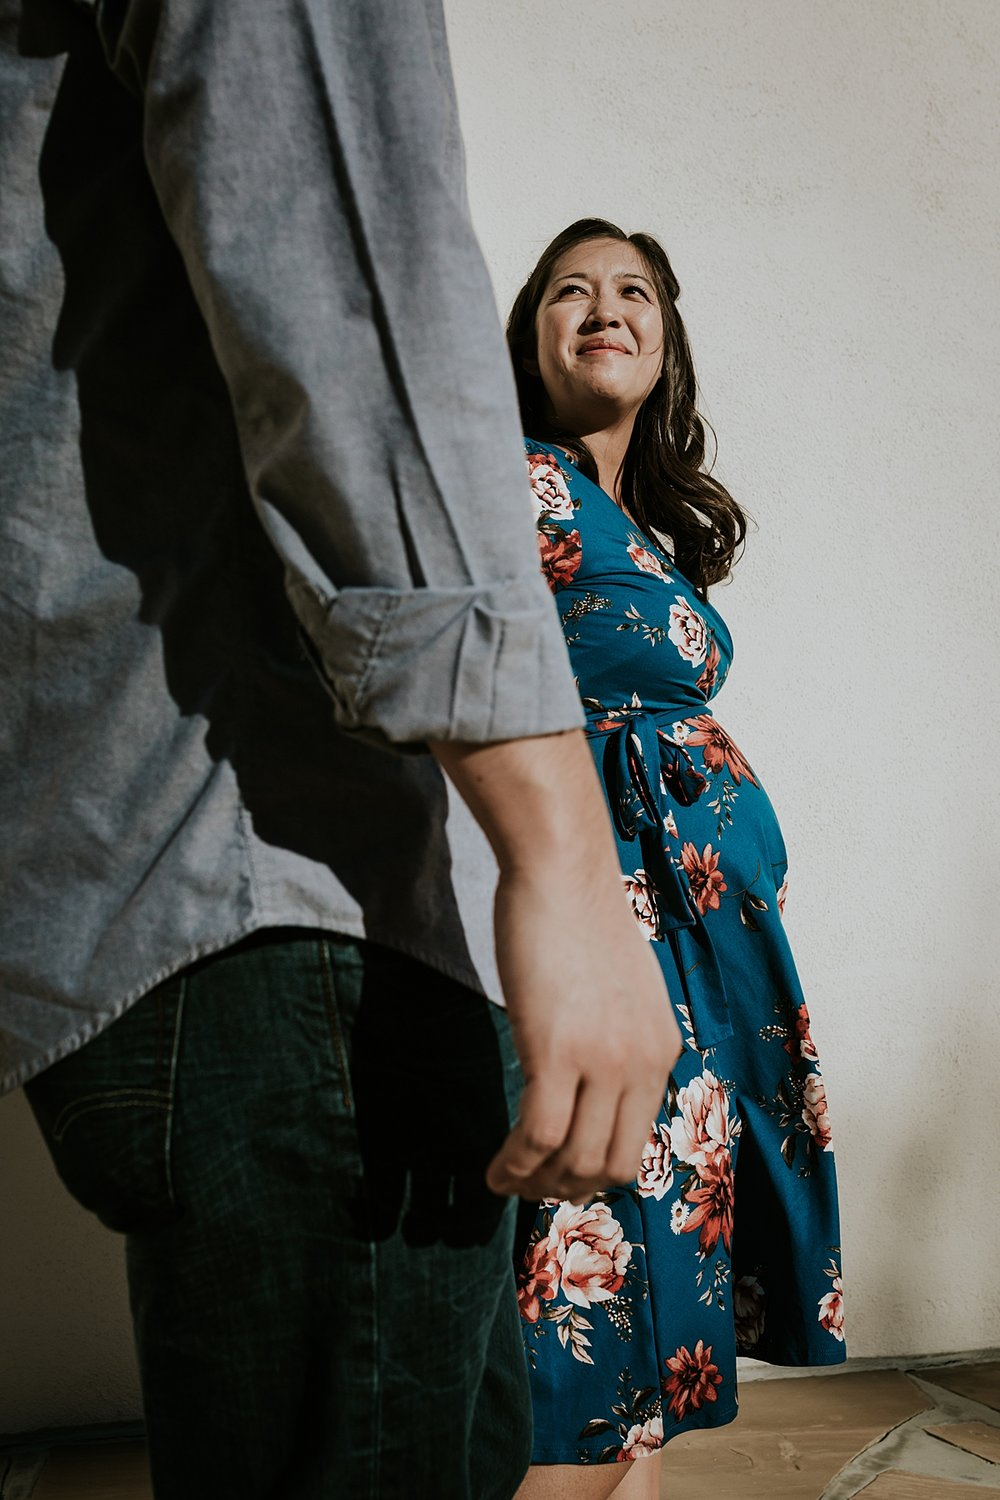 Orange County family photographer. Photo taken from below perspective of couple holding hands and walking together during maternity photo shoot at Noguchi Garden Costa Mesa